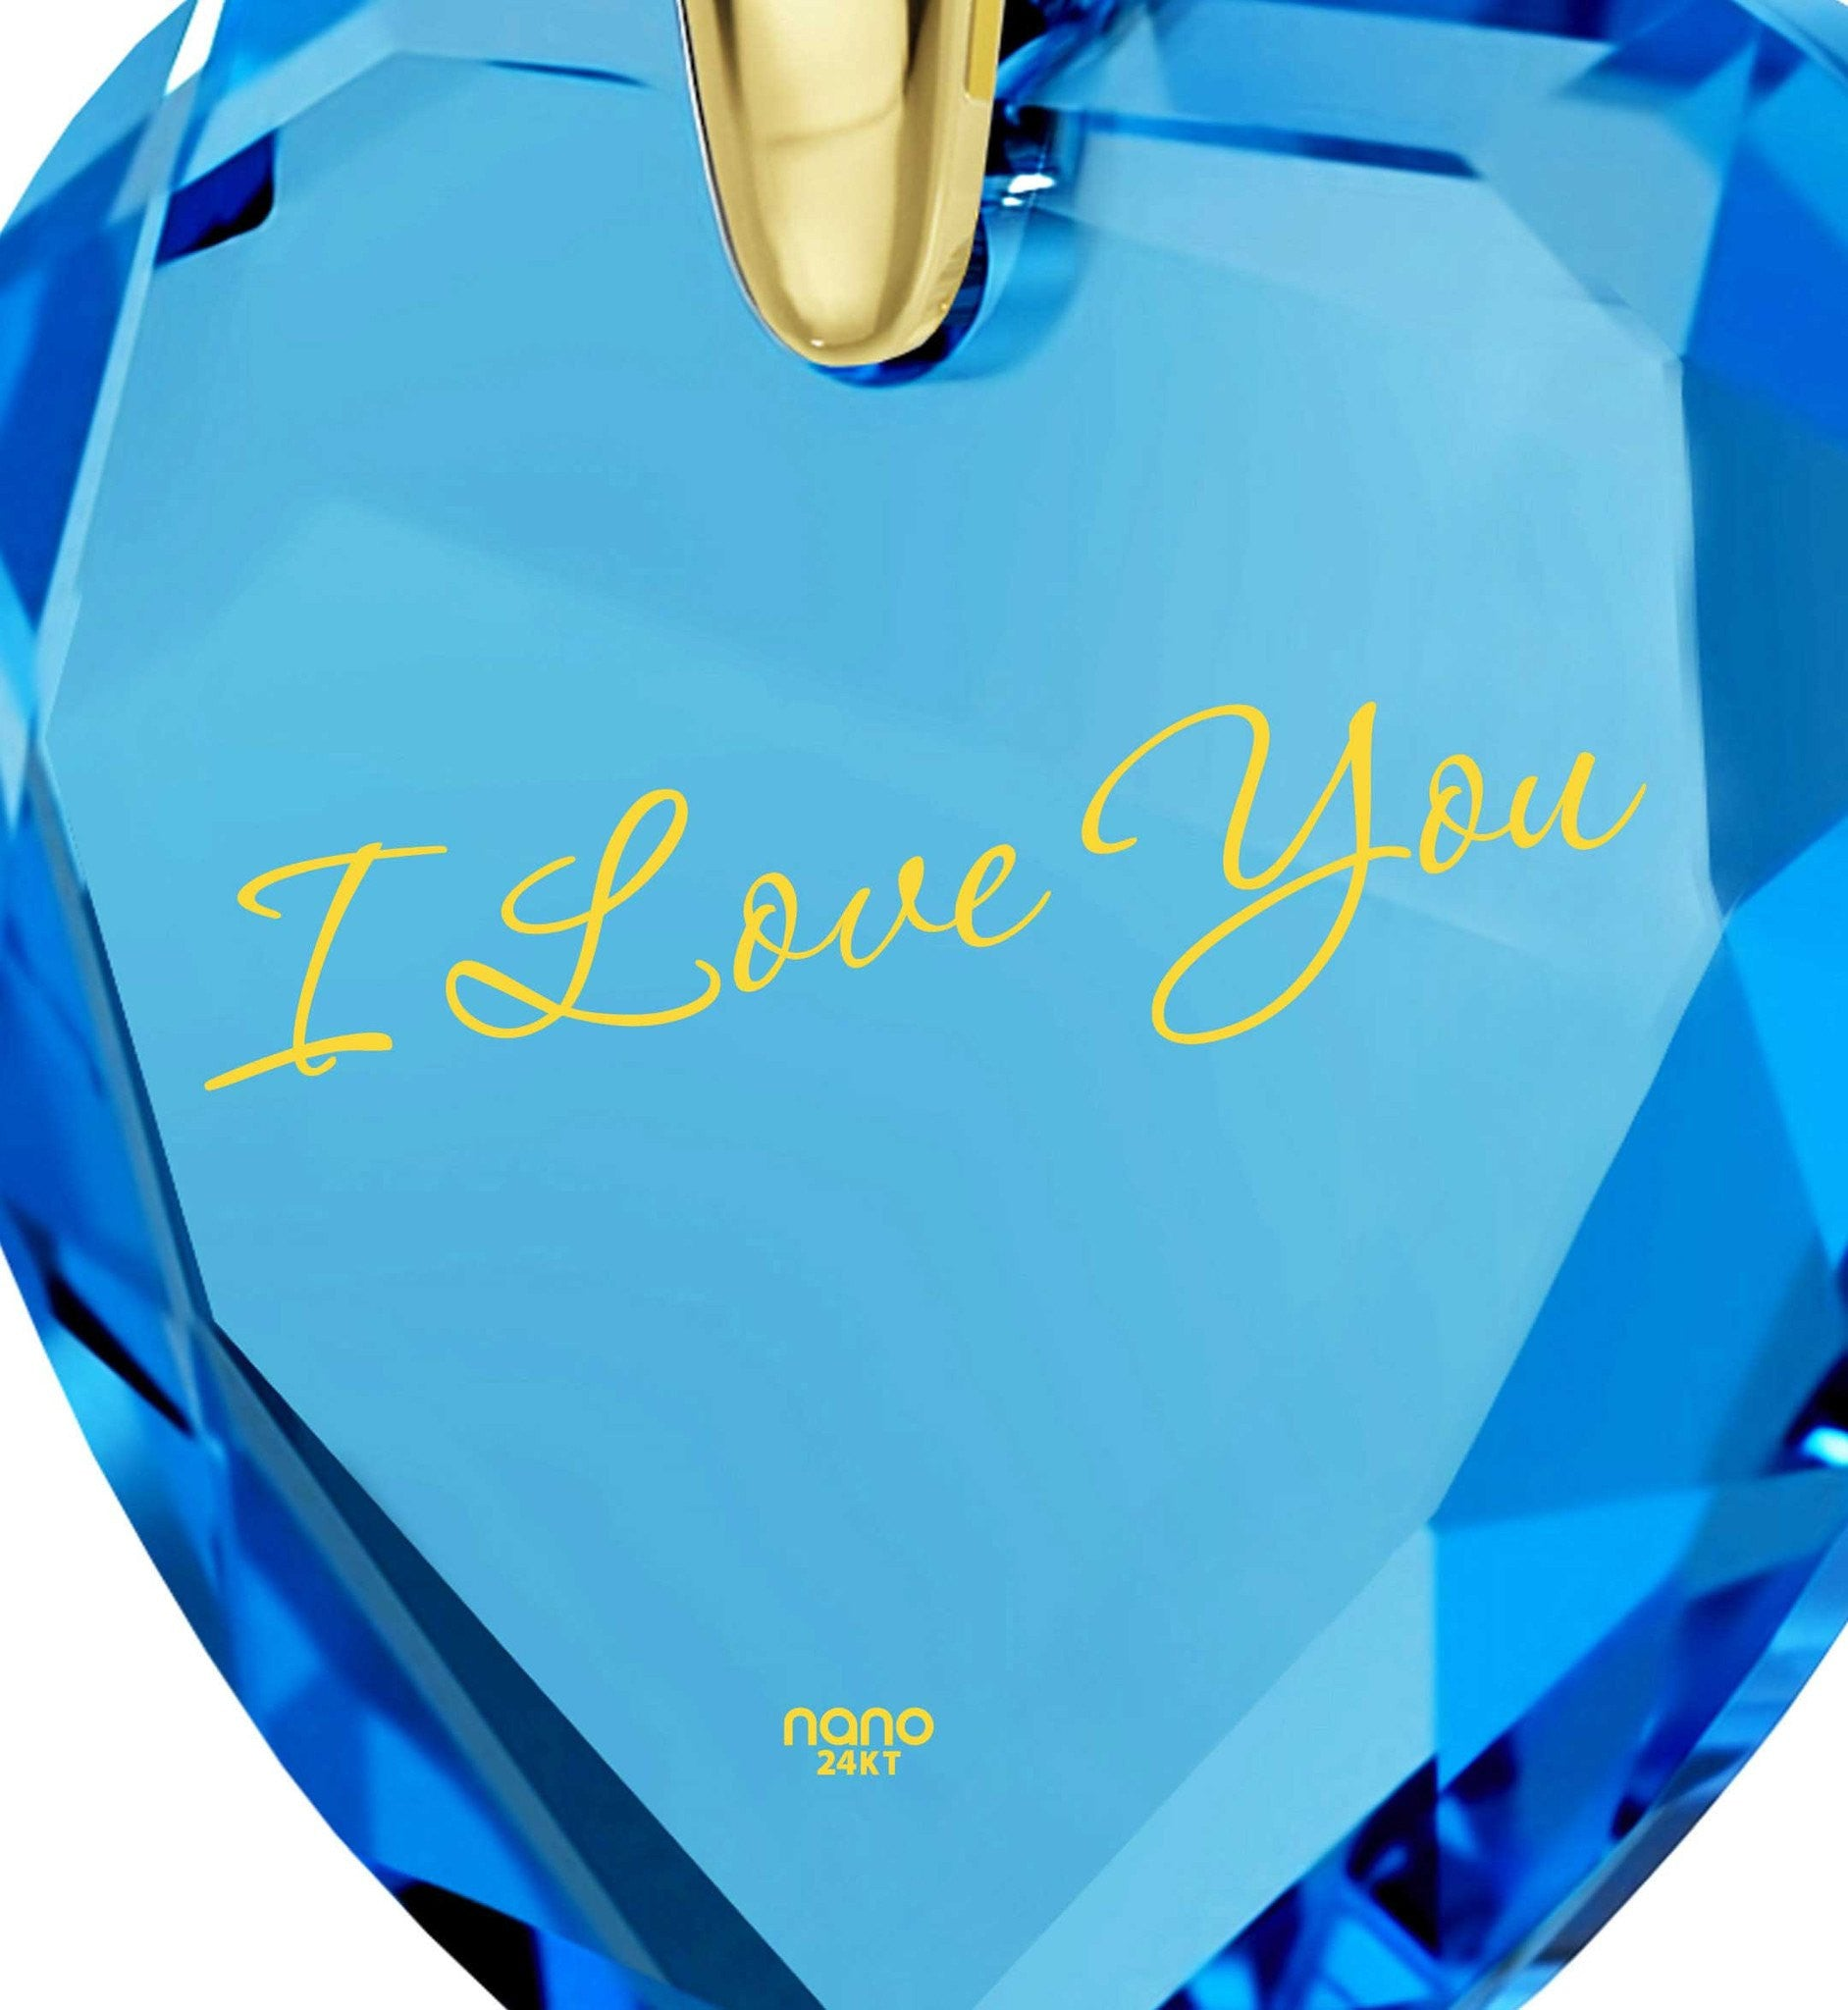 What to Get Wife for Christmas, Gold Filled Jewelry with Blue Heart Stone Pendant, 2nd Anniversary Gift Ideas